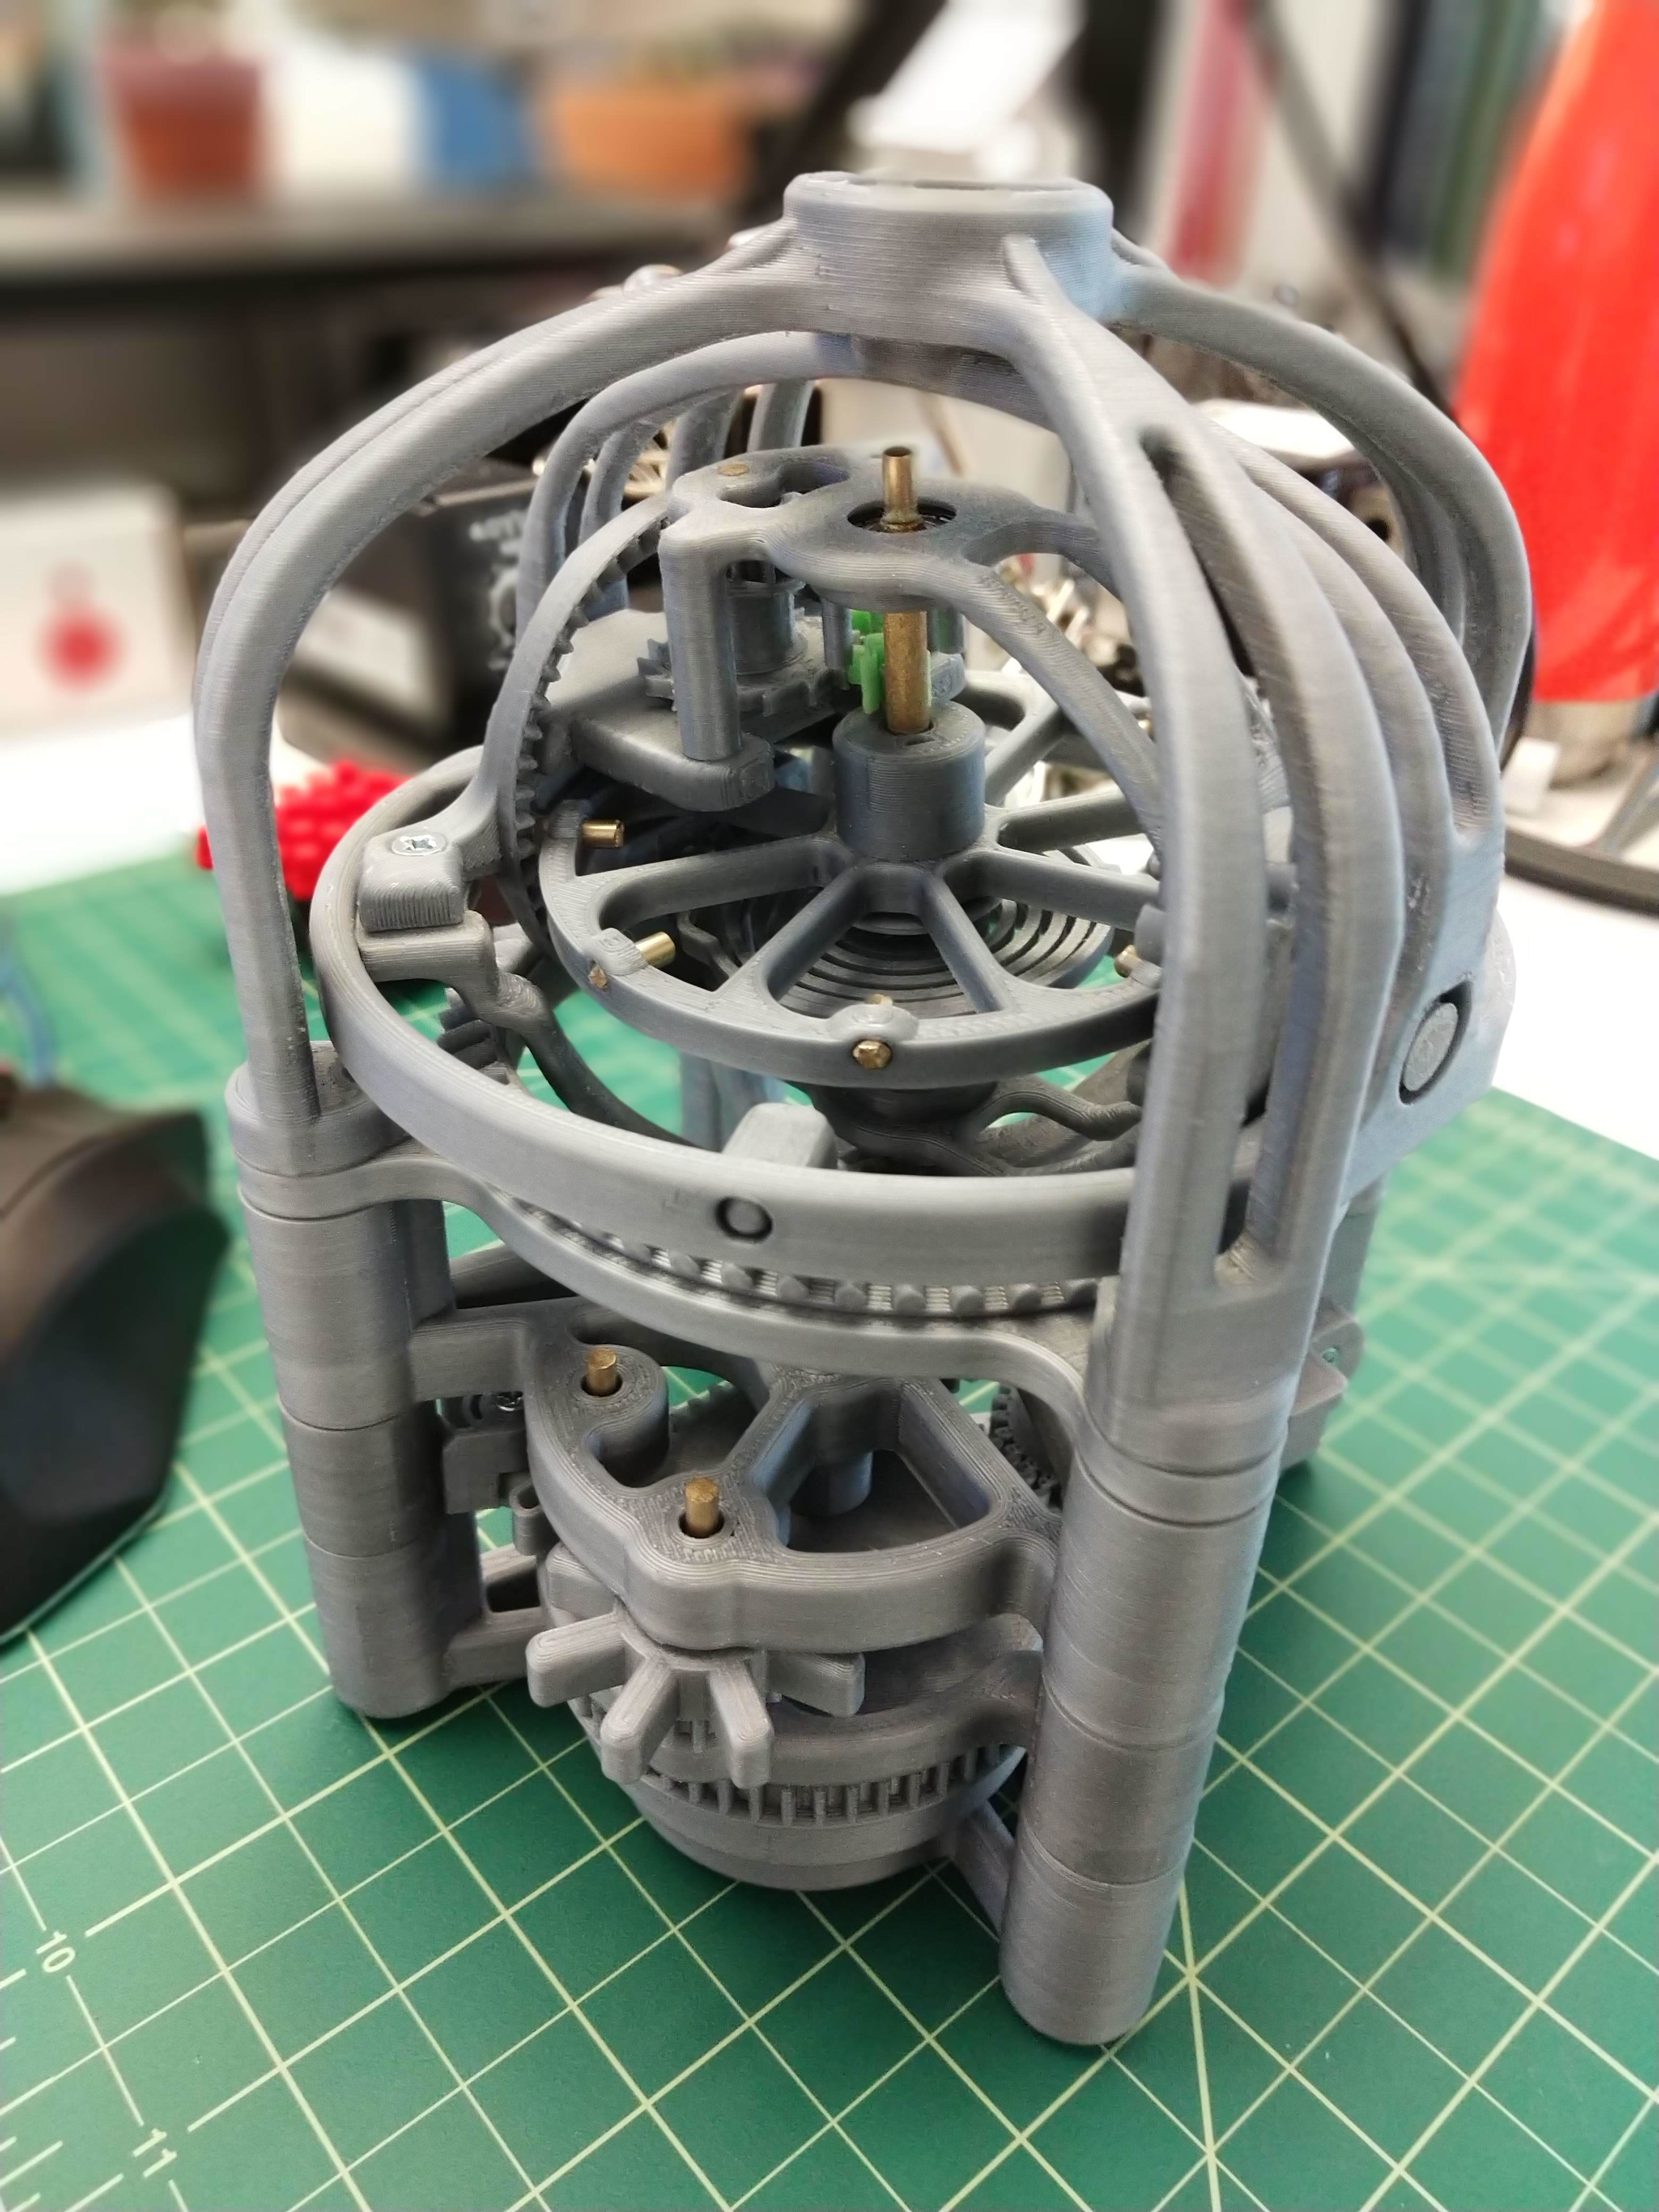 Gyrotourbillon movement from Thingiverse - Snapmaker